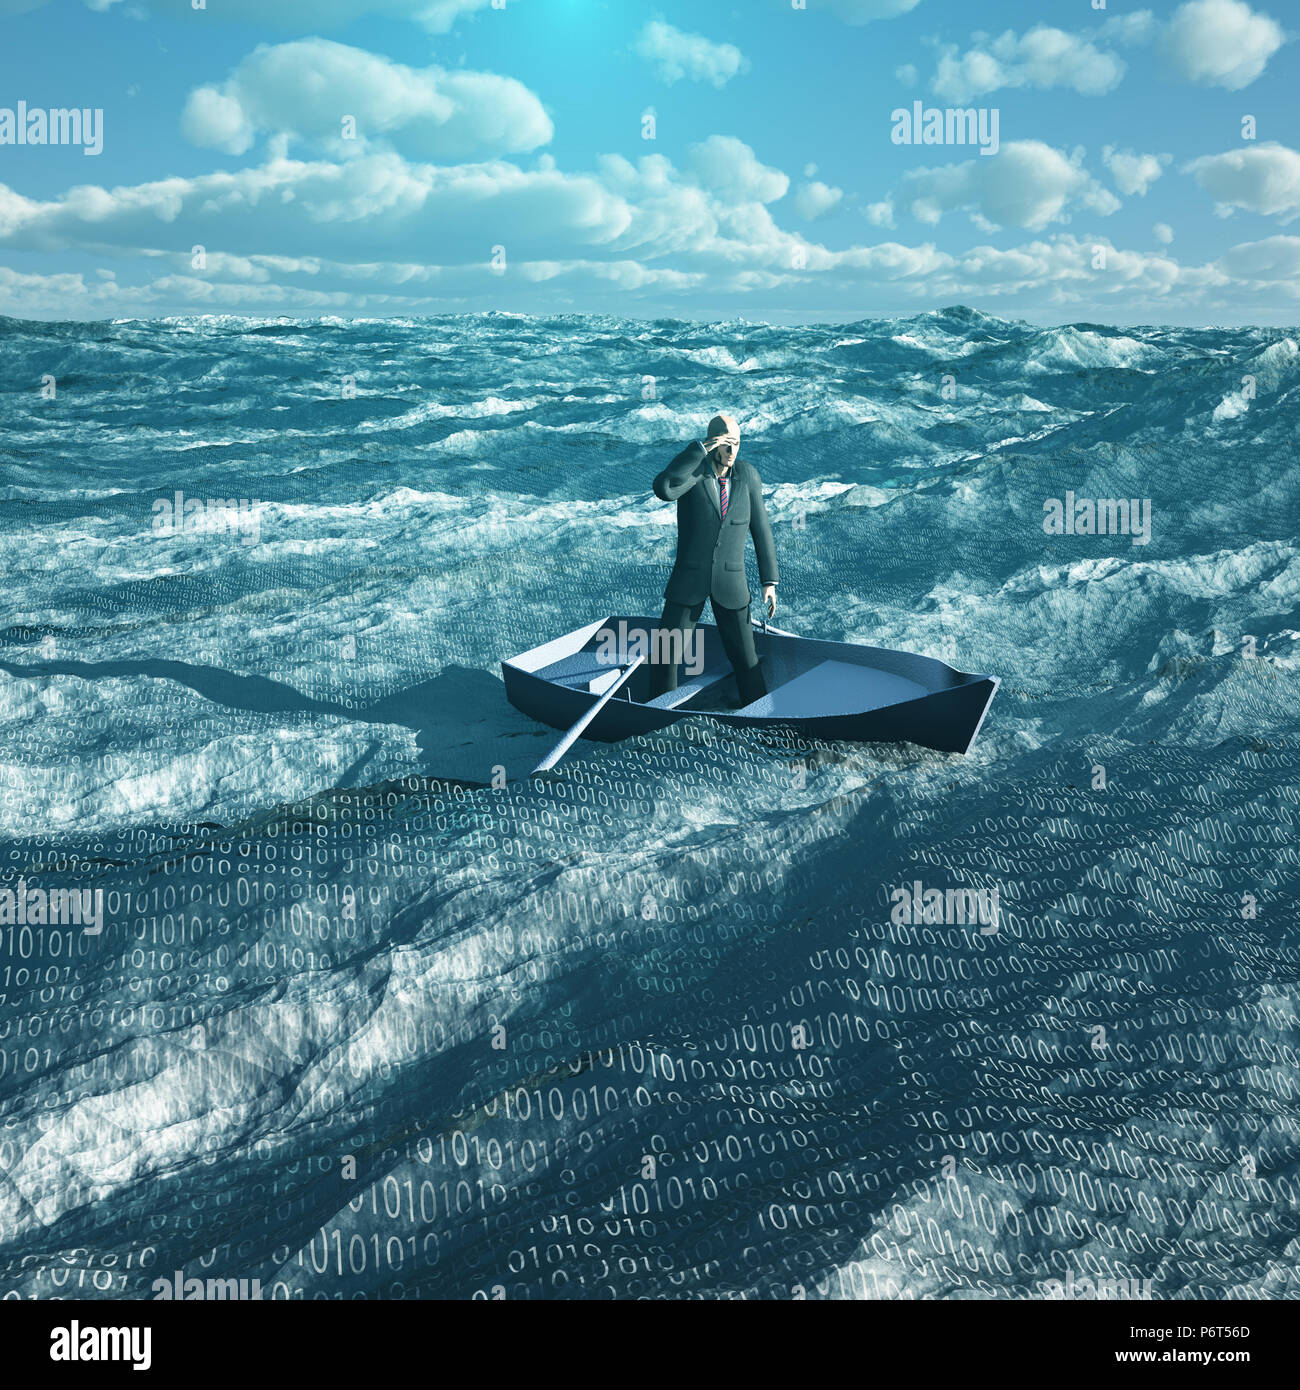 Man drift in tiny baot in binary ocean - Stock Image